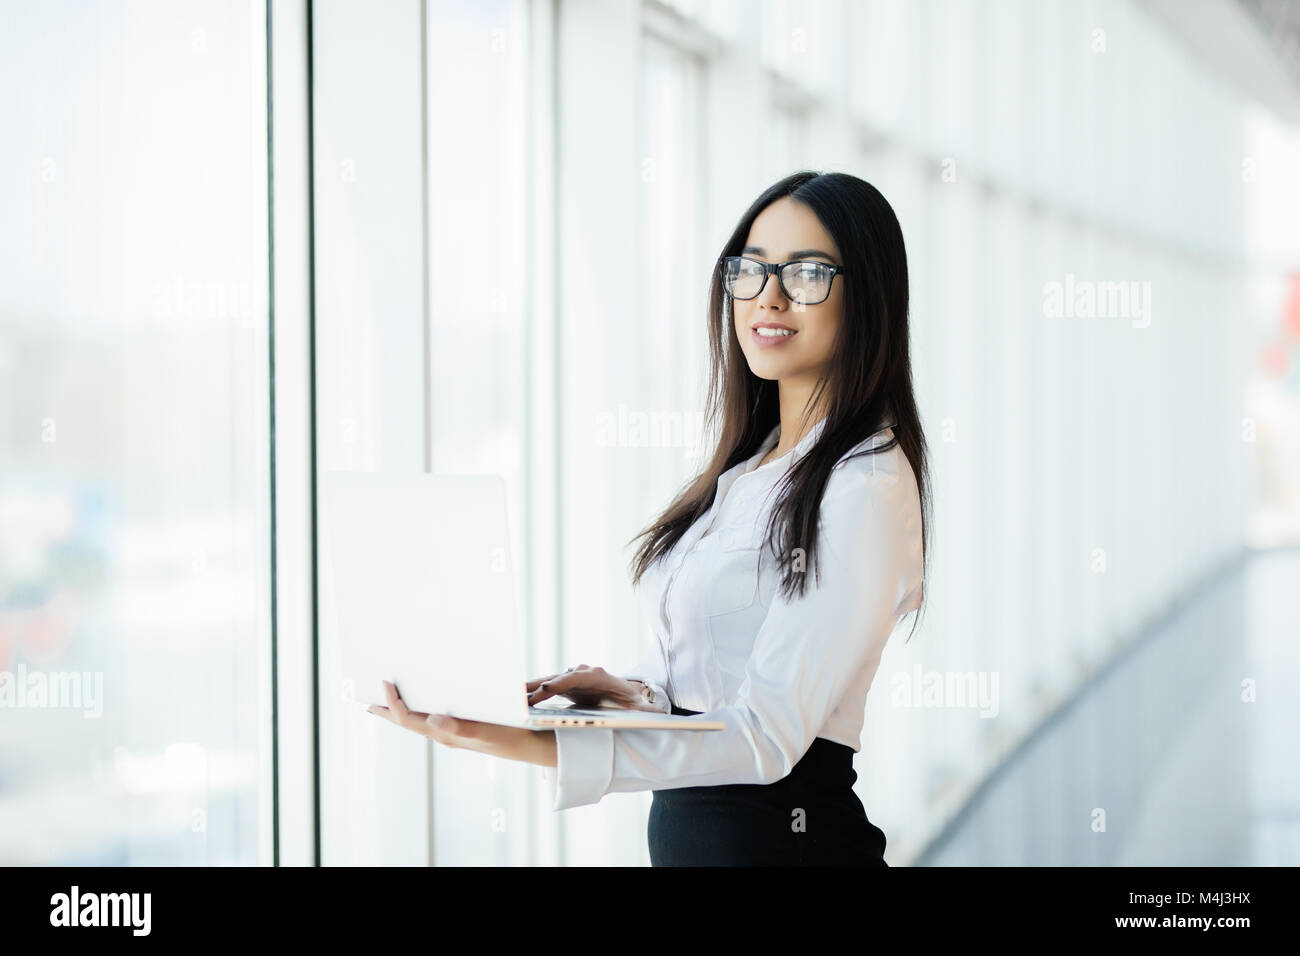 Young business woman working in her luxurious office holding a laptop standing against panoramic window with a view - Stock Image